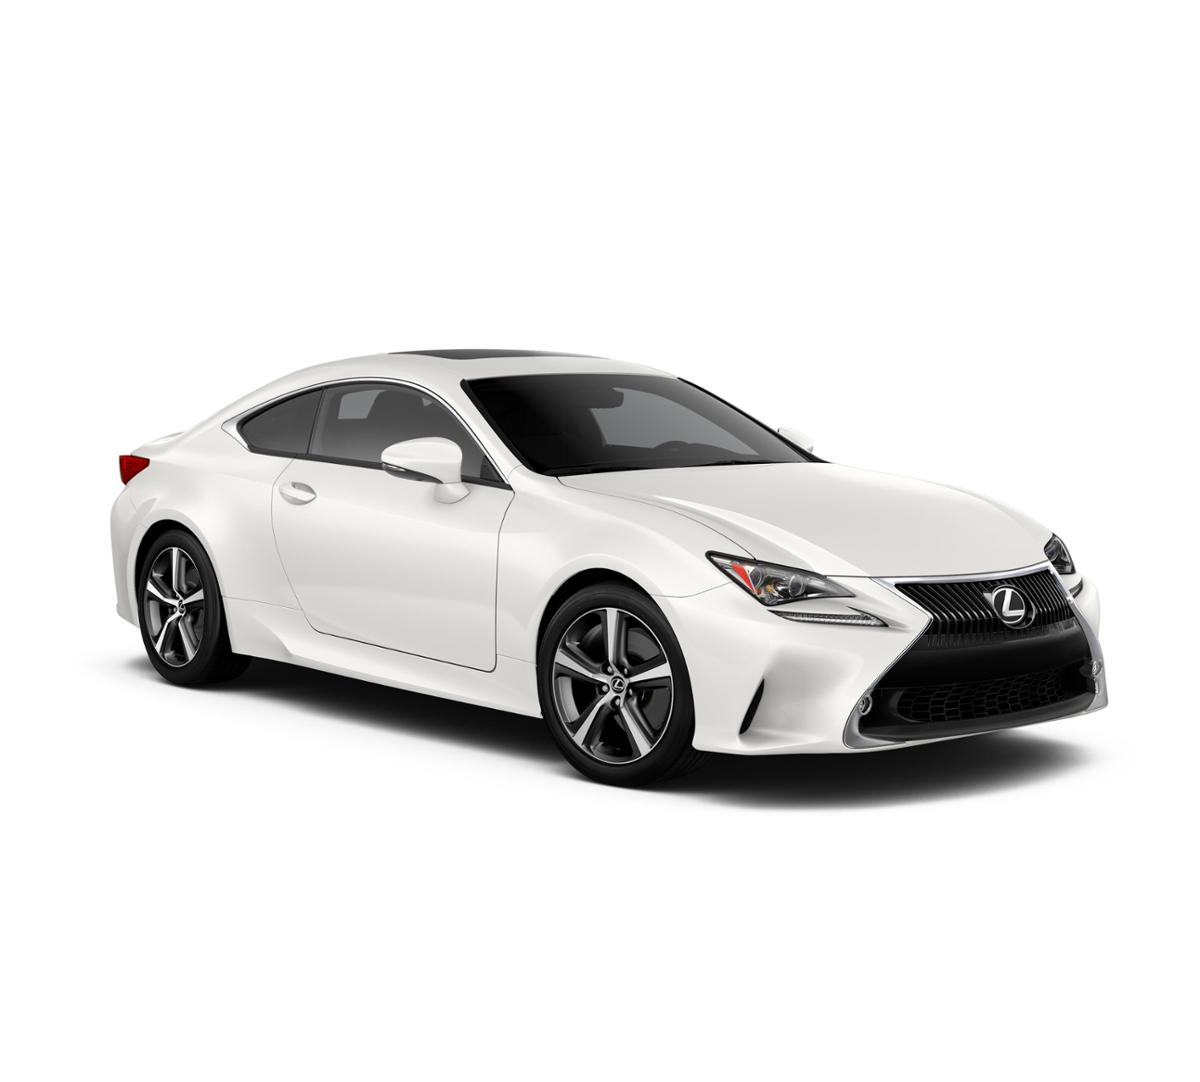 2017 Lexus Rc Exterior: New 2017 Lexus RC Turbo In Newport Beach, Orange County